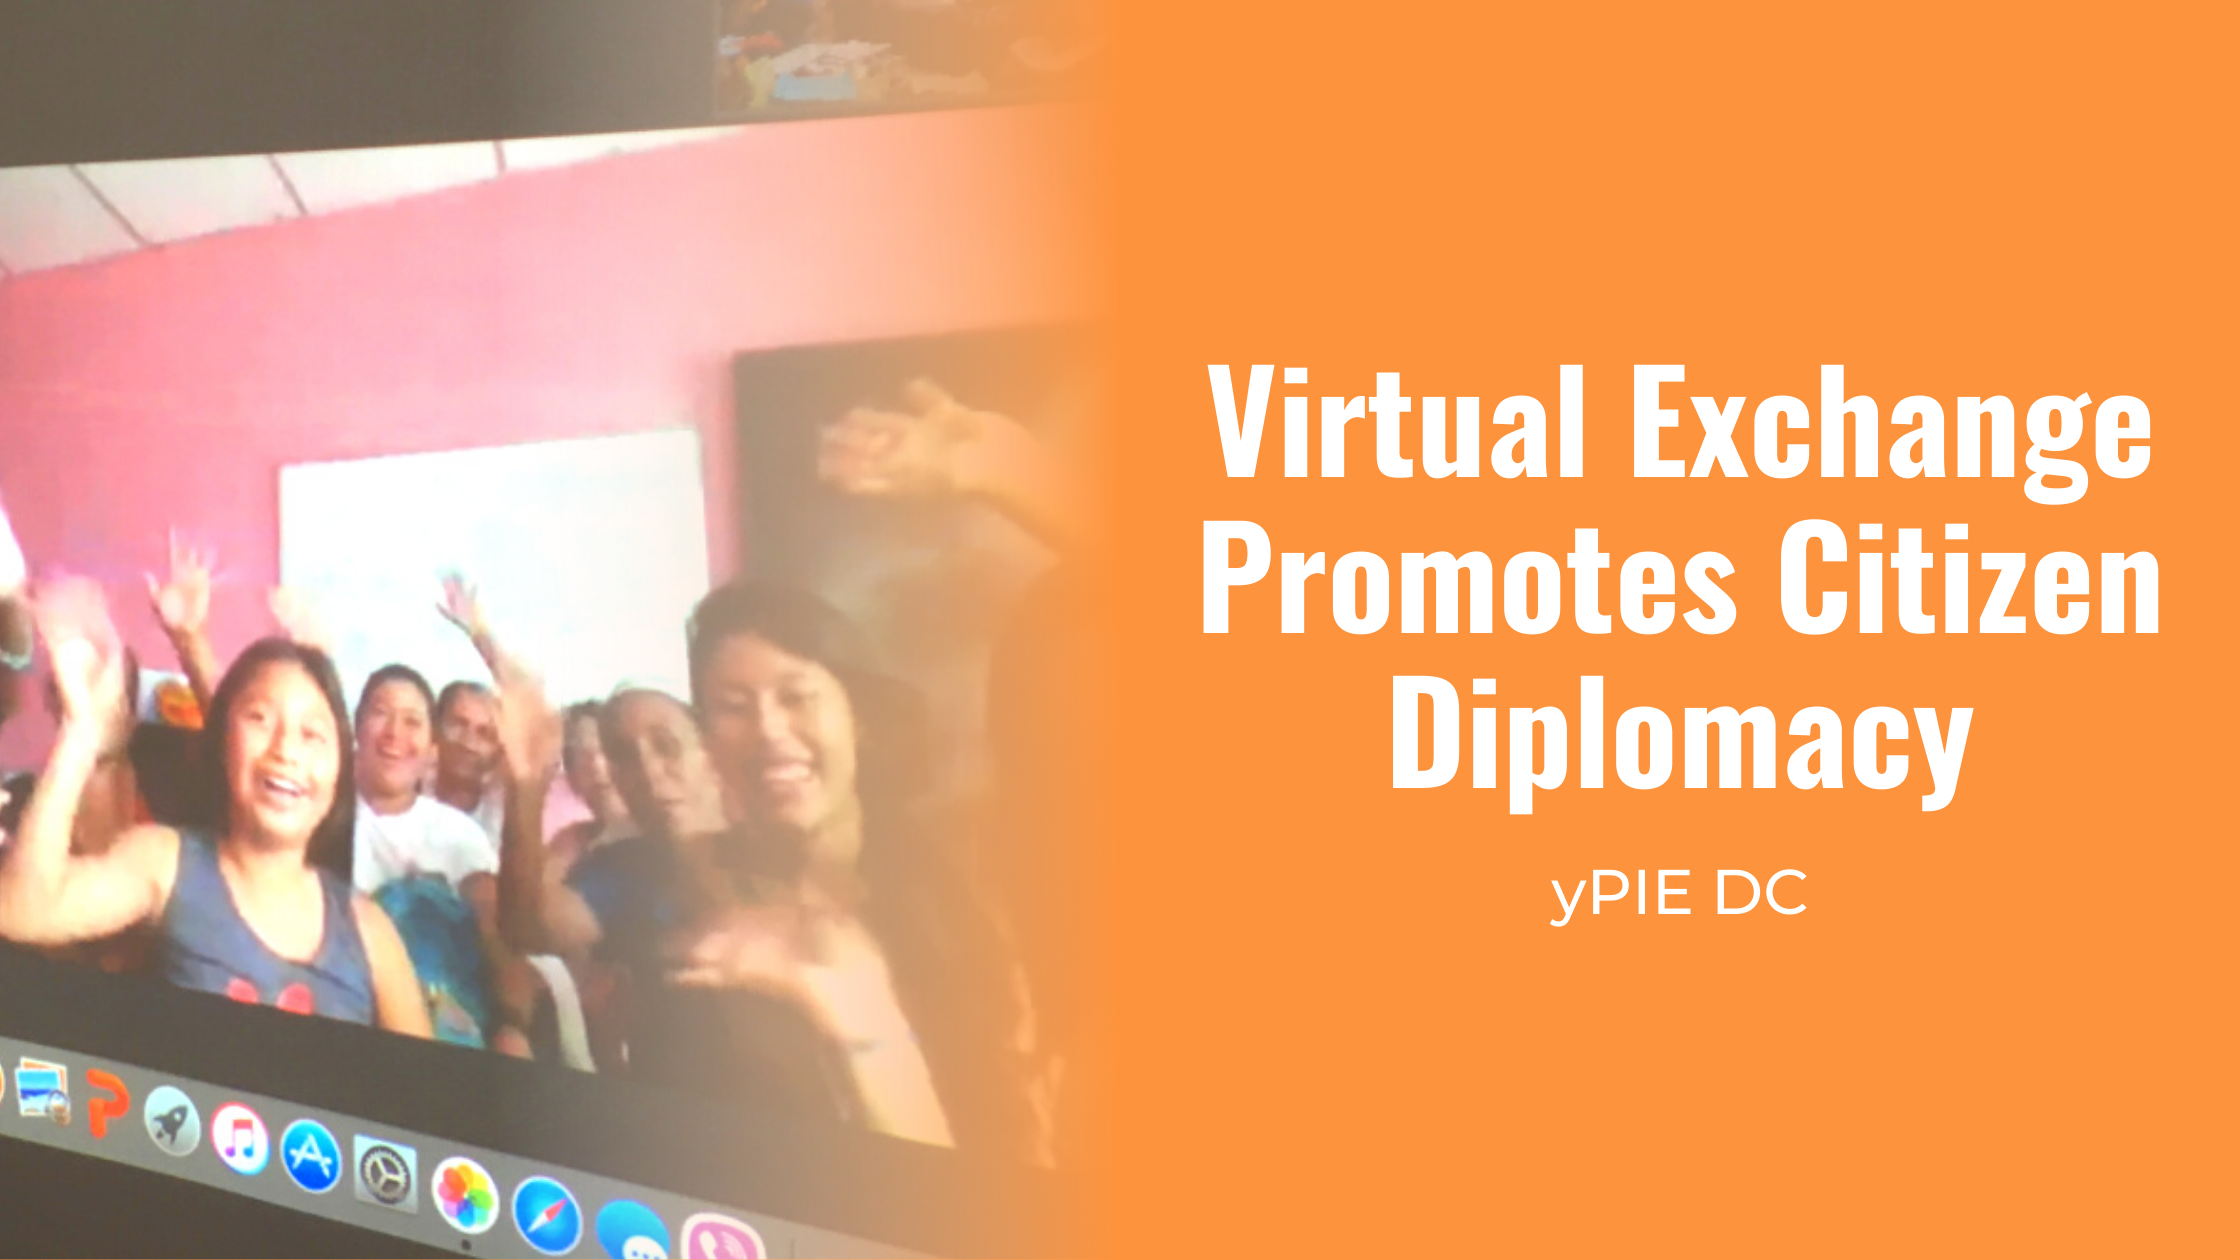 virtual exchange promotes citizen diplomacy